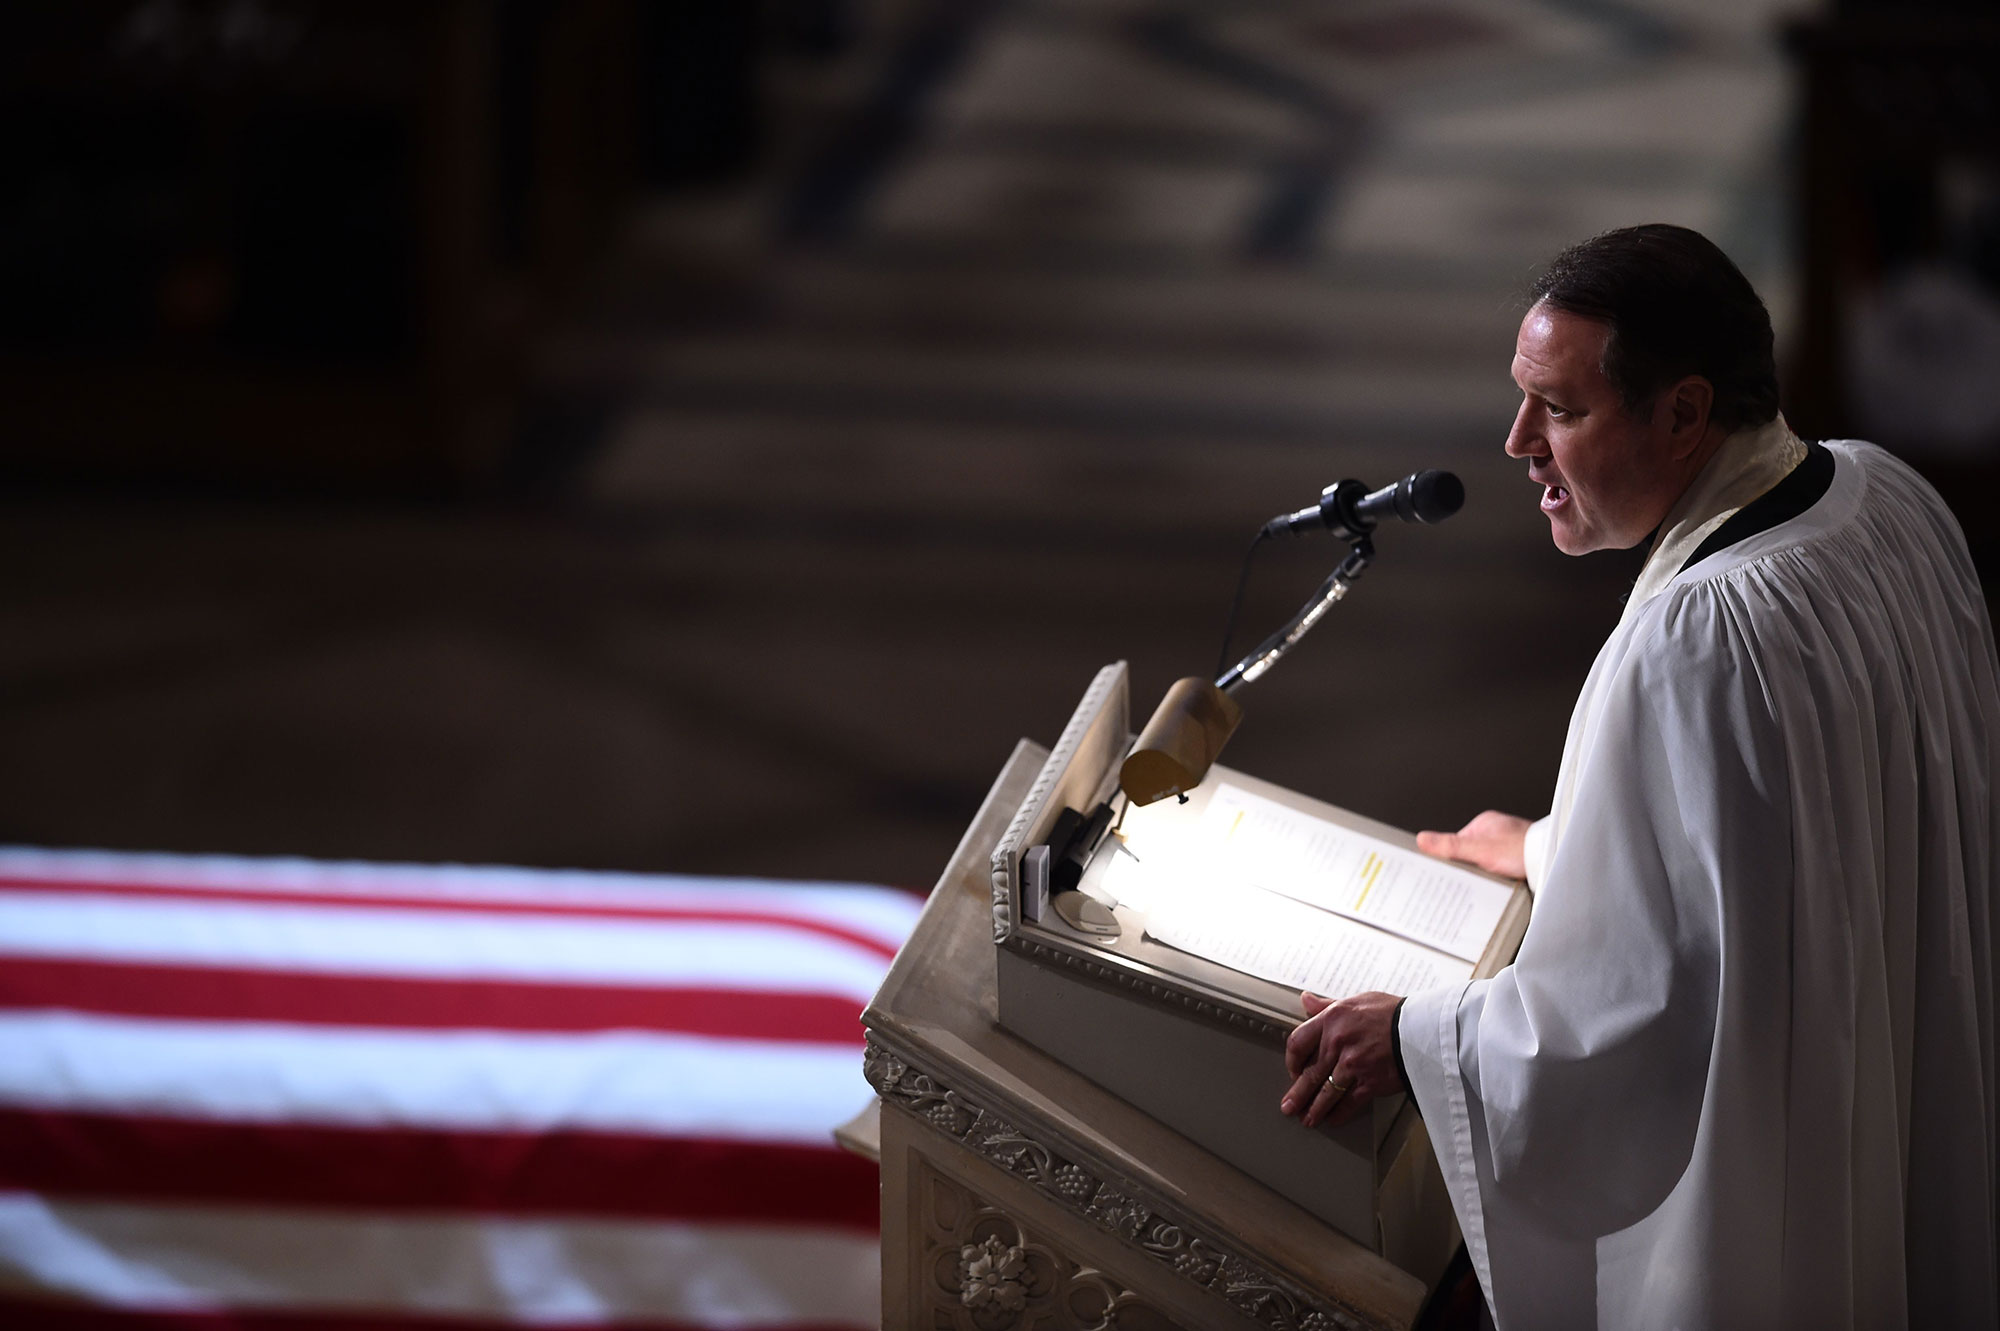 "<div class=""meta image-caption""><div class=""origin-logo origin-image none""><span>none</span></div><span class=""caption-text"">The Reverend Dr. Russell Levenson speaks at the state funeral of former US president George H.W. Bush at the Washington National Cathedral in Washington, December 5, 2018. (BRENDAN SMIALOWSKI/AFP/Getty Images)</span></div>"